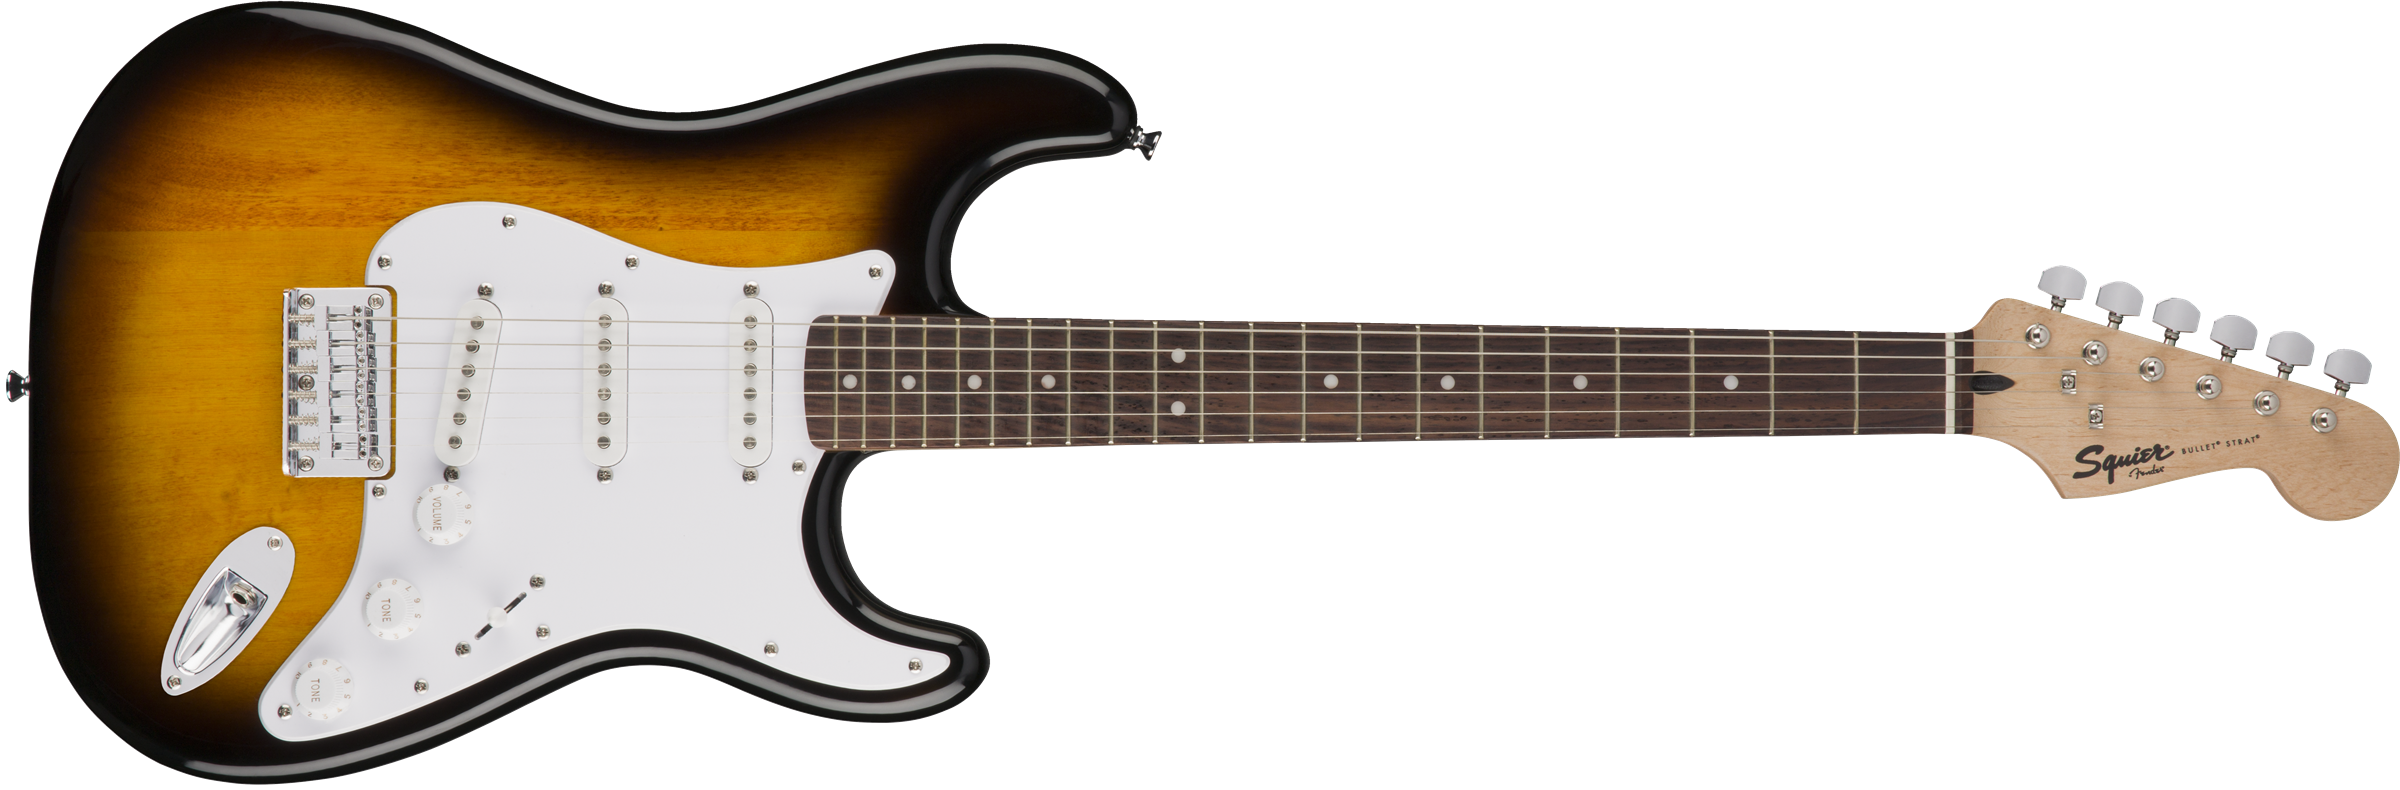 Fender Squier Bullet Strat HT Brown Sunburst